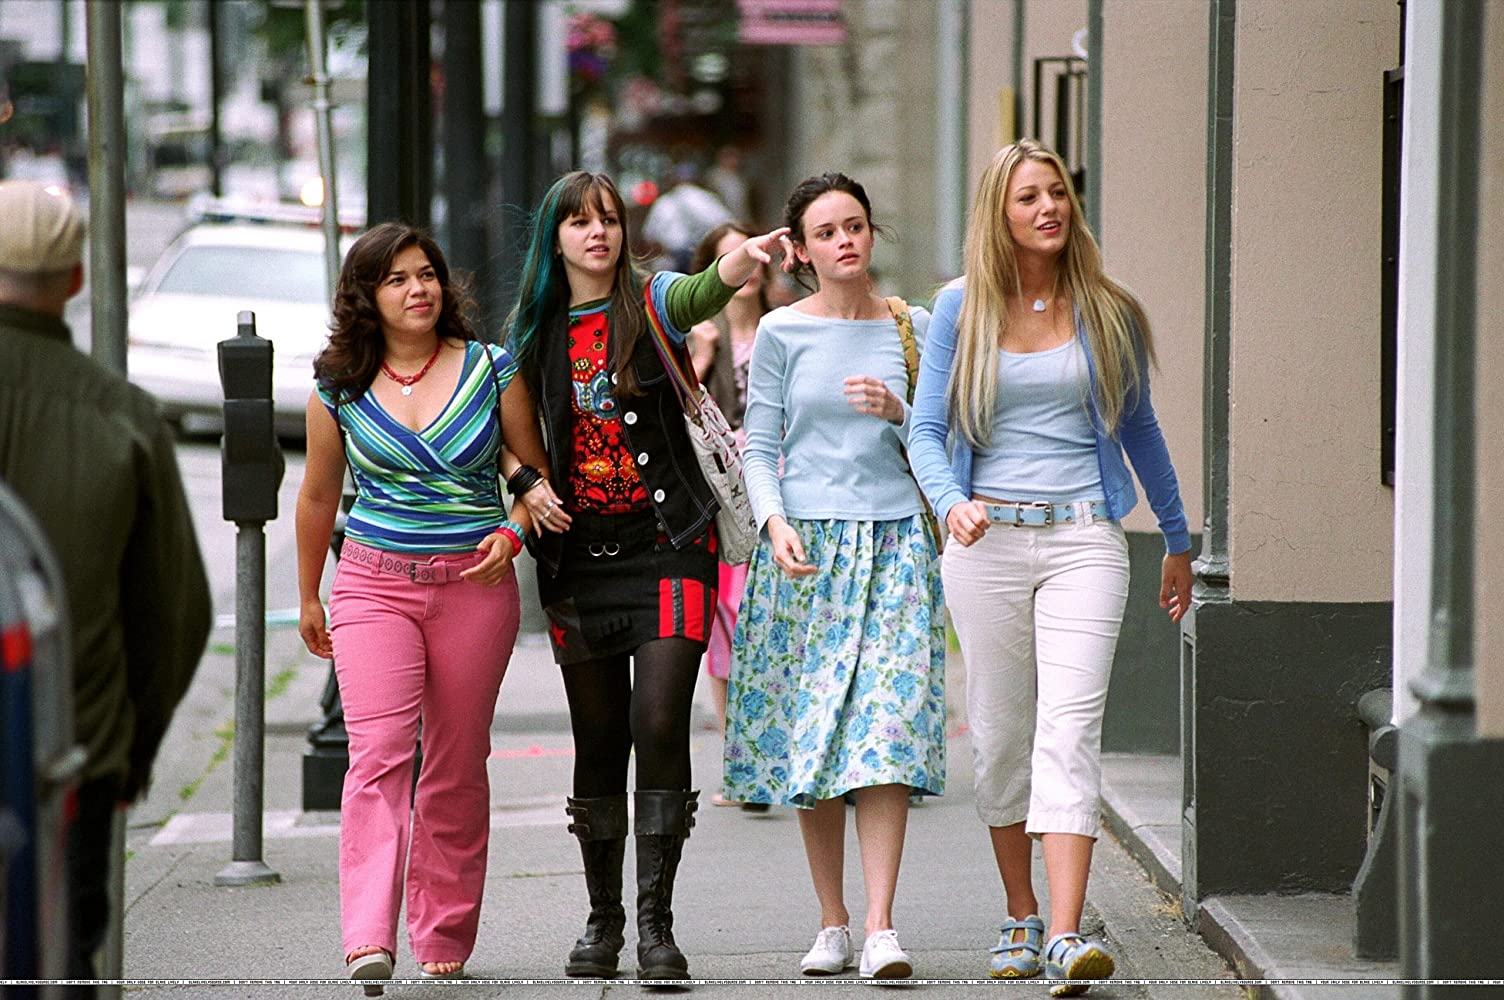 Alexis Bledel, Blake Lively, Amber Tamblyn, and America Ferrera in The Sisterhood of the Traveling Pants (2005). Four female friends, Carmen, Tibby, Lena, and Bridget, are walking along a city street during the day, dressed in colourful girly outfits - except for Tibby, who has long hair dyed blue and wears a black and red goth-style outfit. Tibby is pointing to something further along the street, the other girls look on with curiosity.